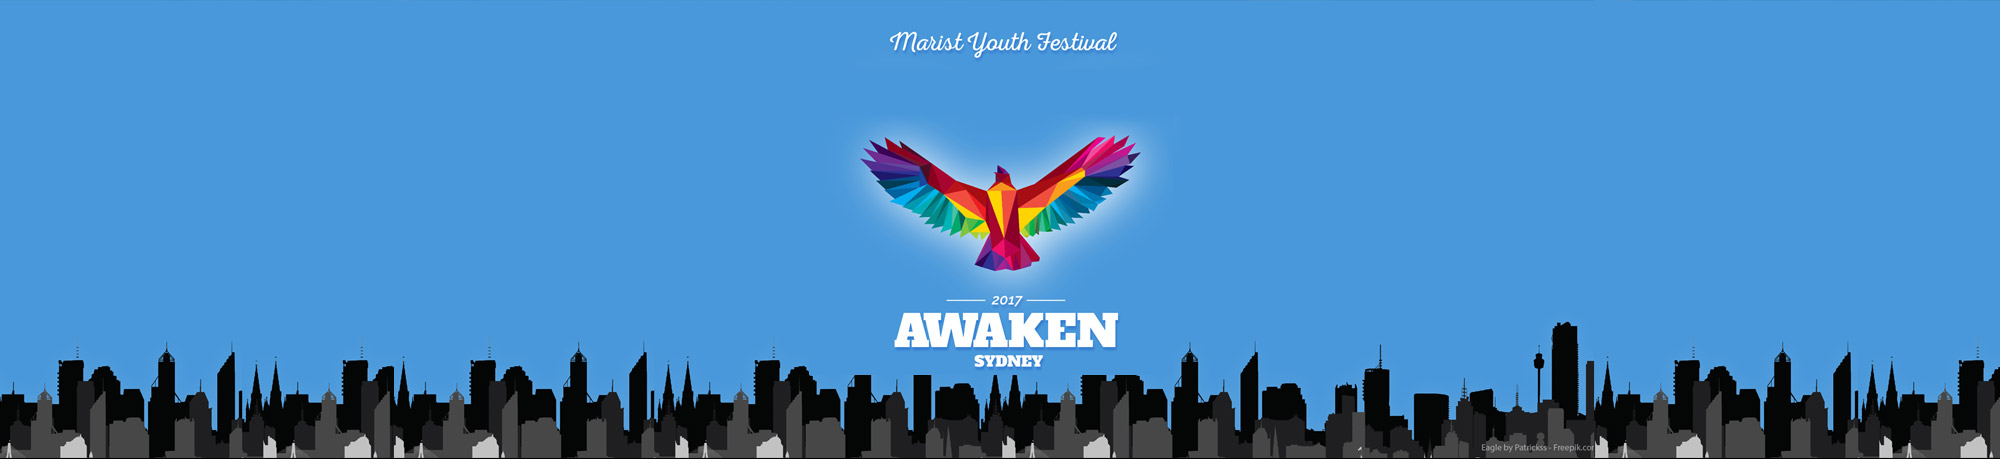 National Marist Youth Festival